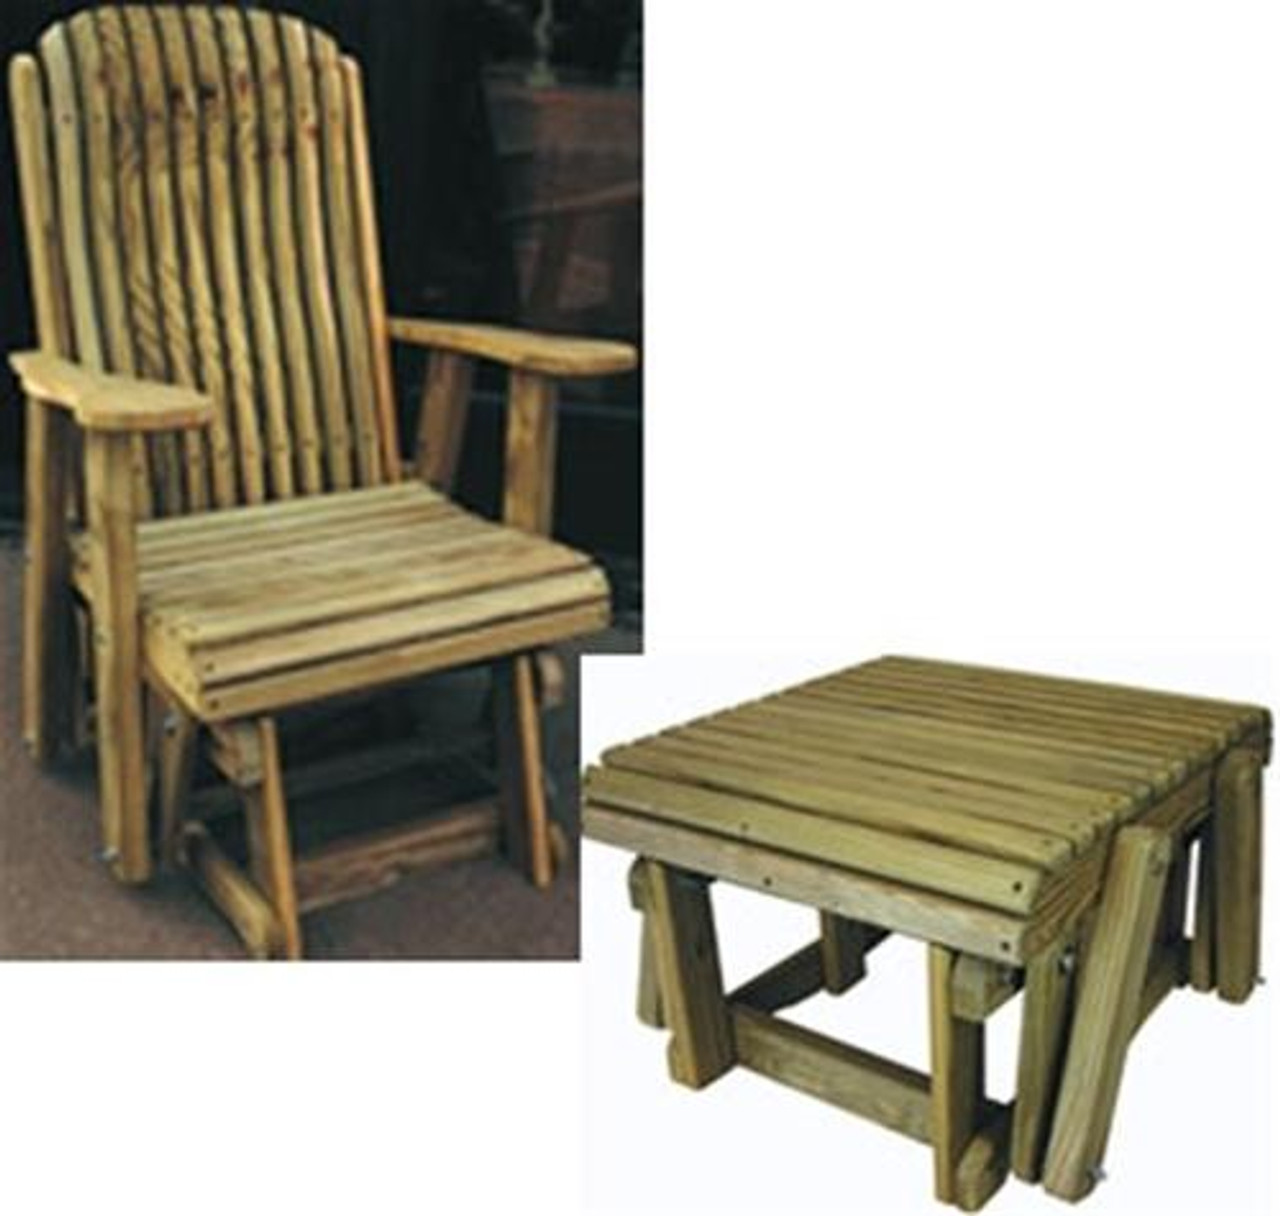 Cherry Tree Toys Glider Chair and Ottoman Plans